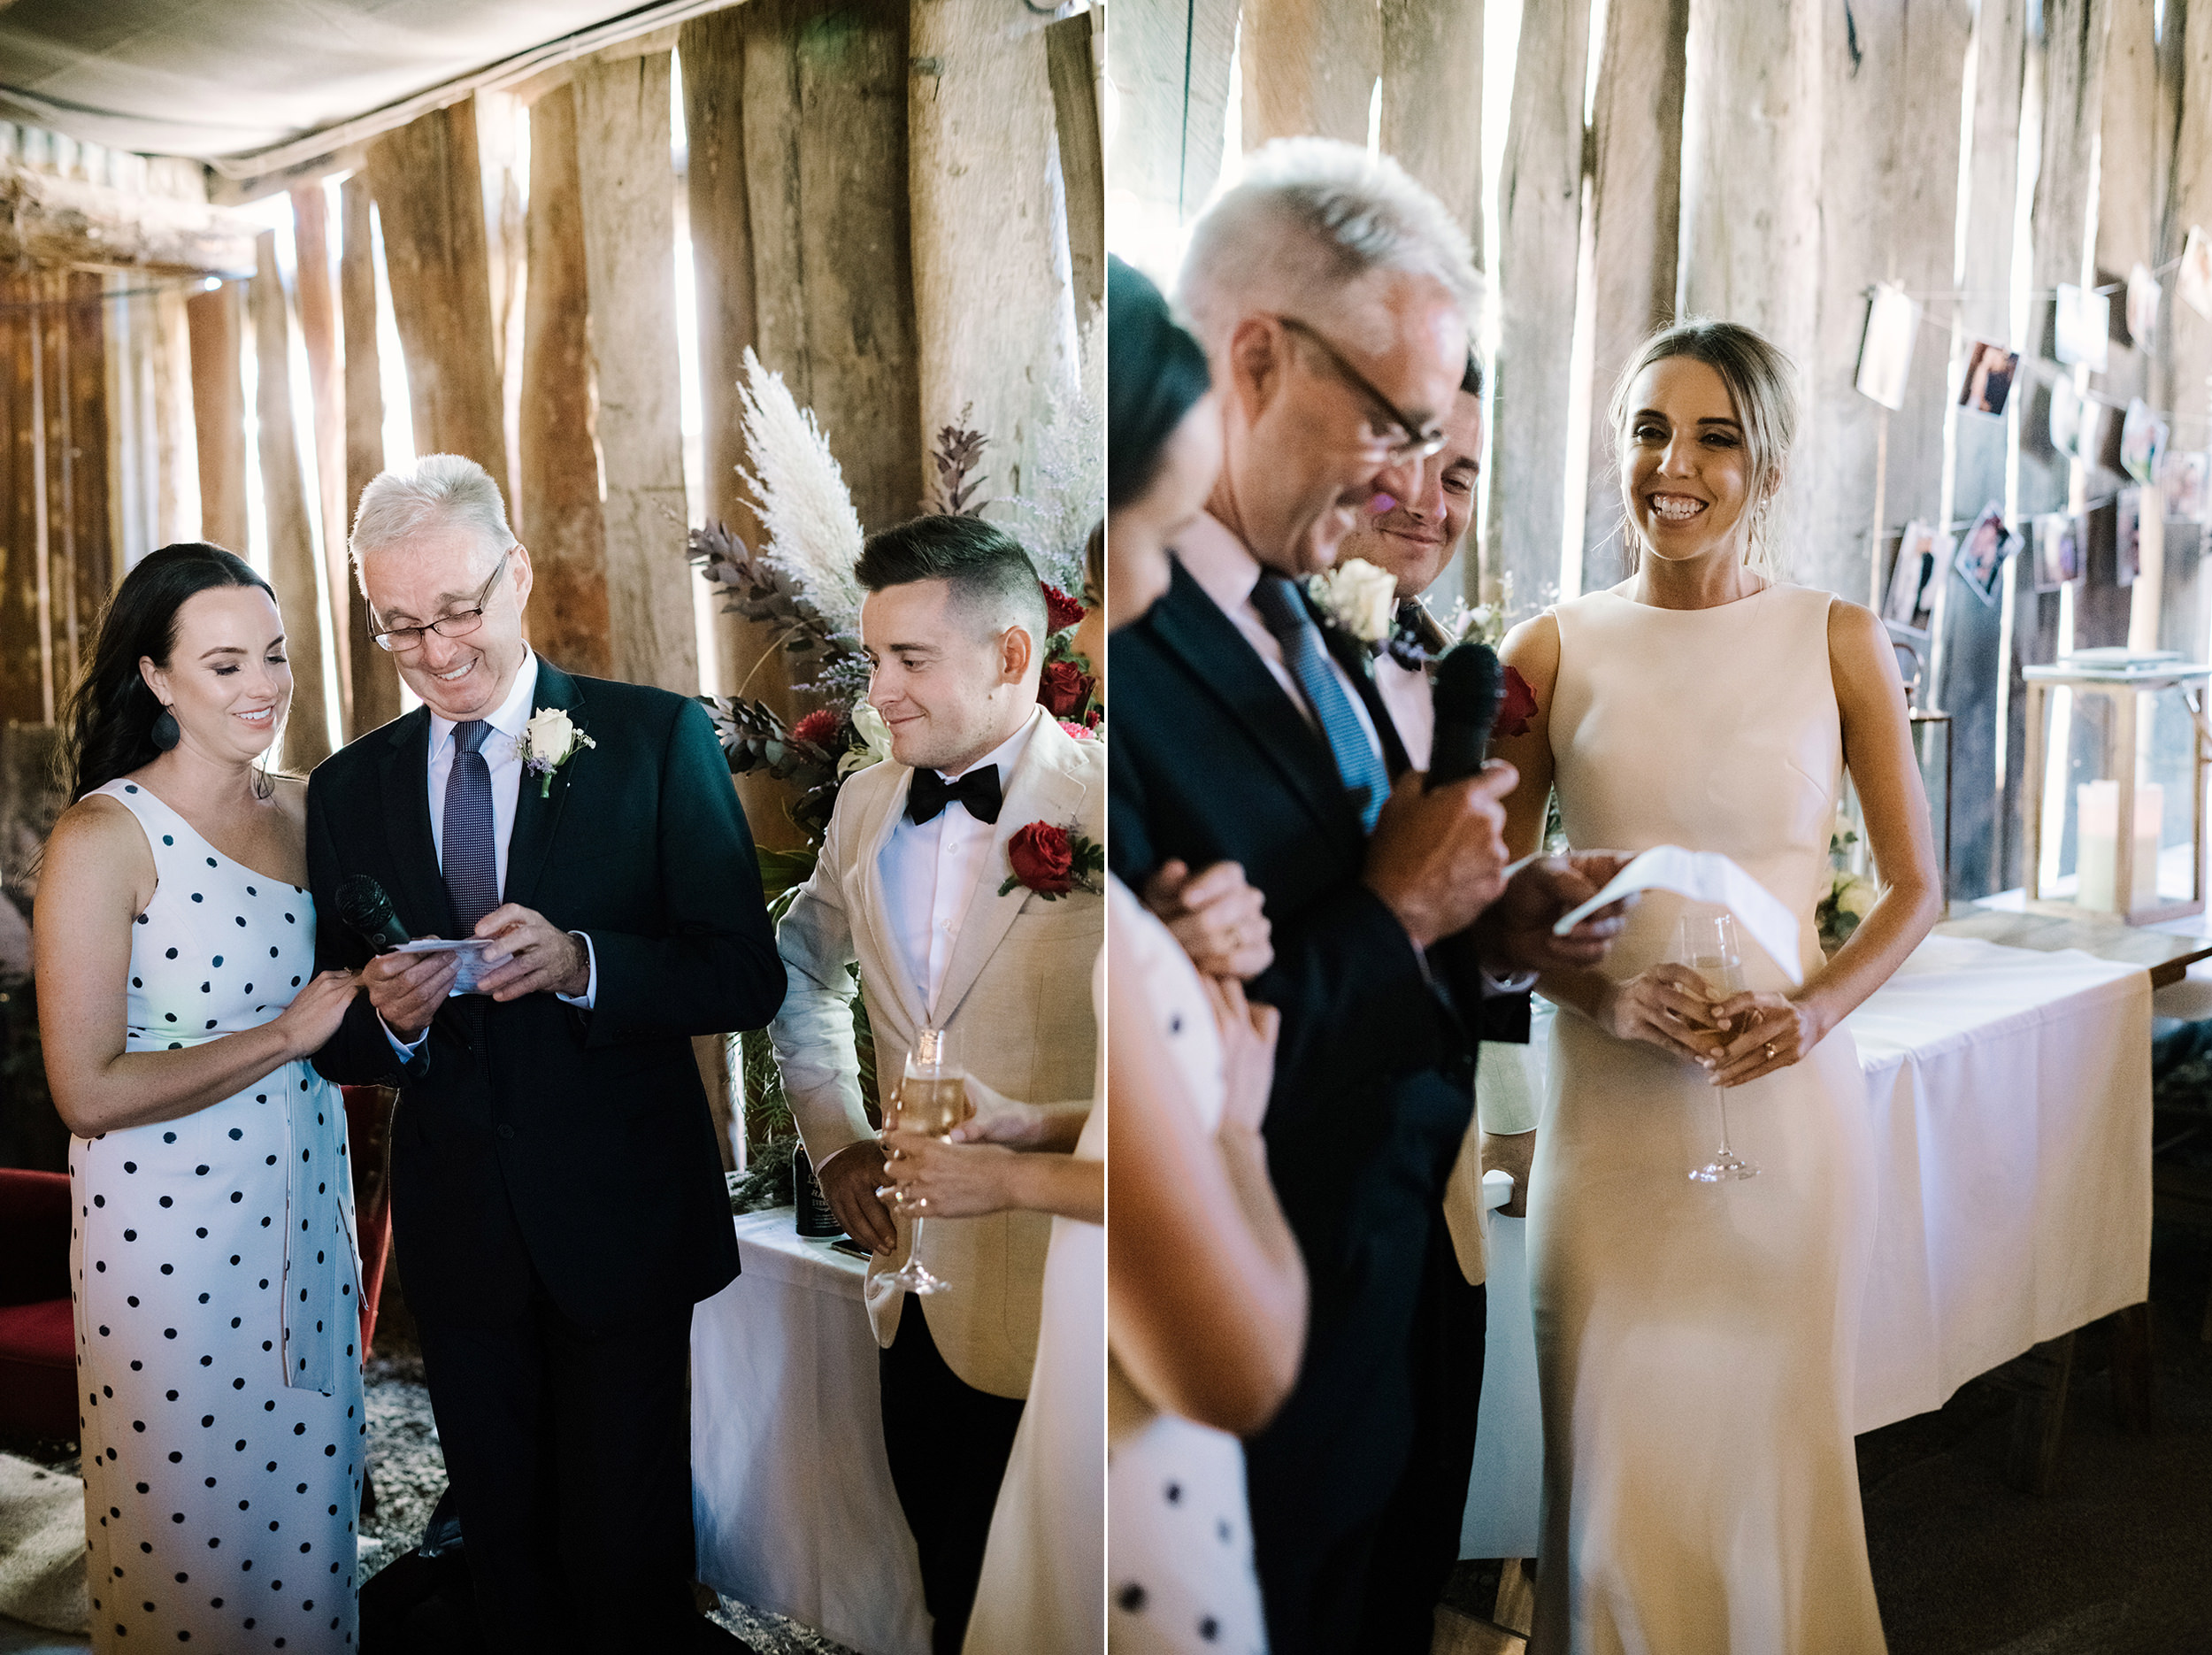 I_Got_You_Babe_Co._Megan_Andrew_Country_Property_Wedding_Victoria0094.JPG